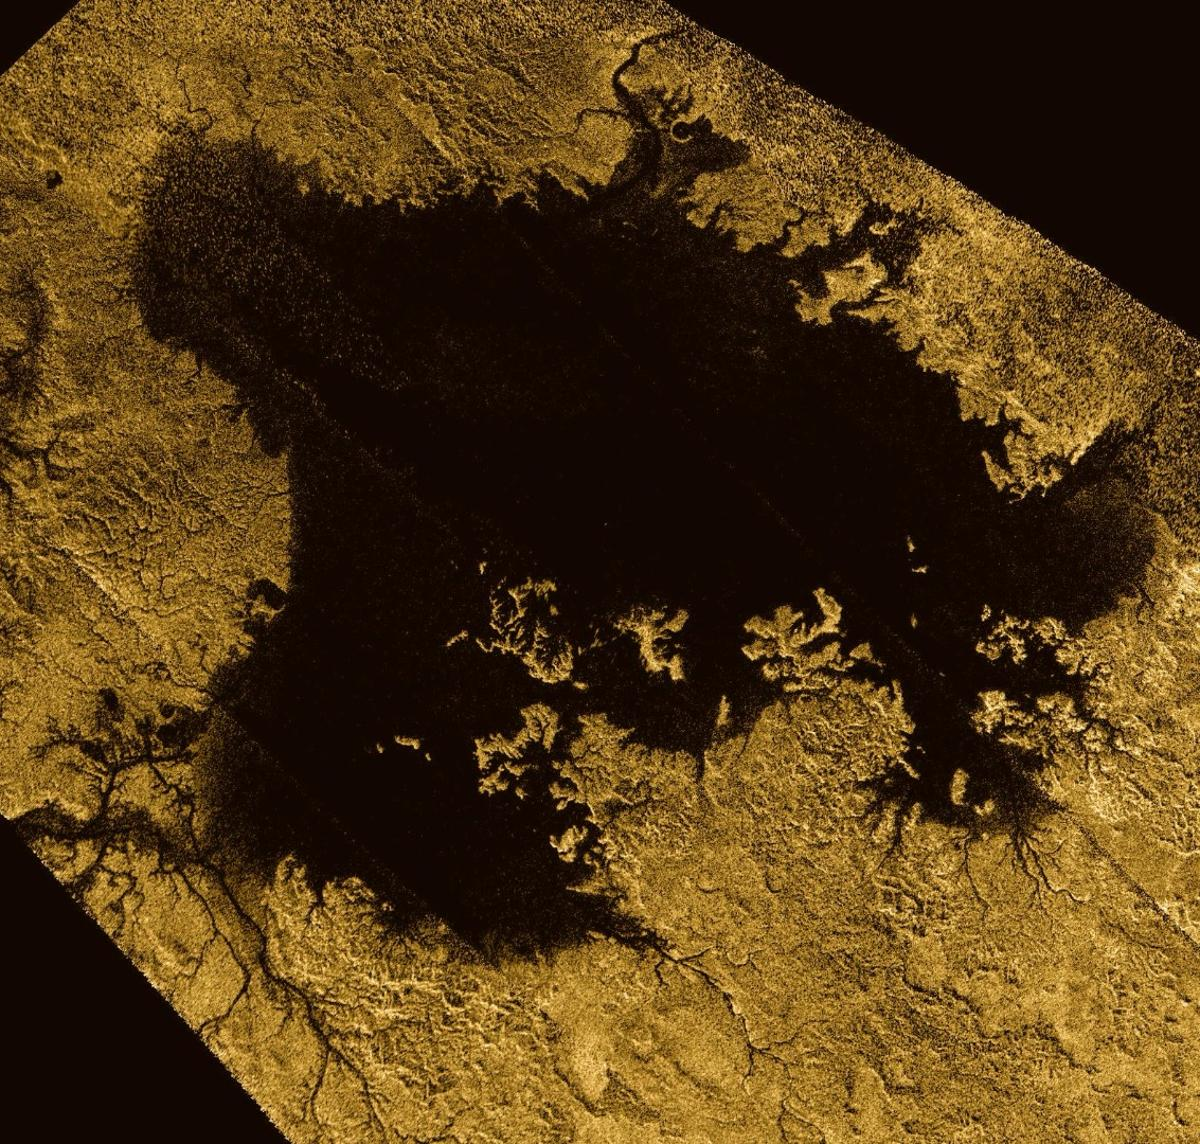 Cassini image of Ligeia Mare – the second largest hydrocarbon sea present on the surface of Titan